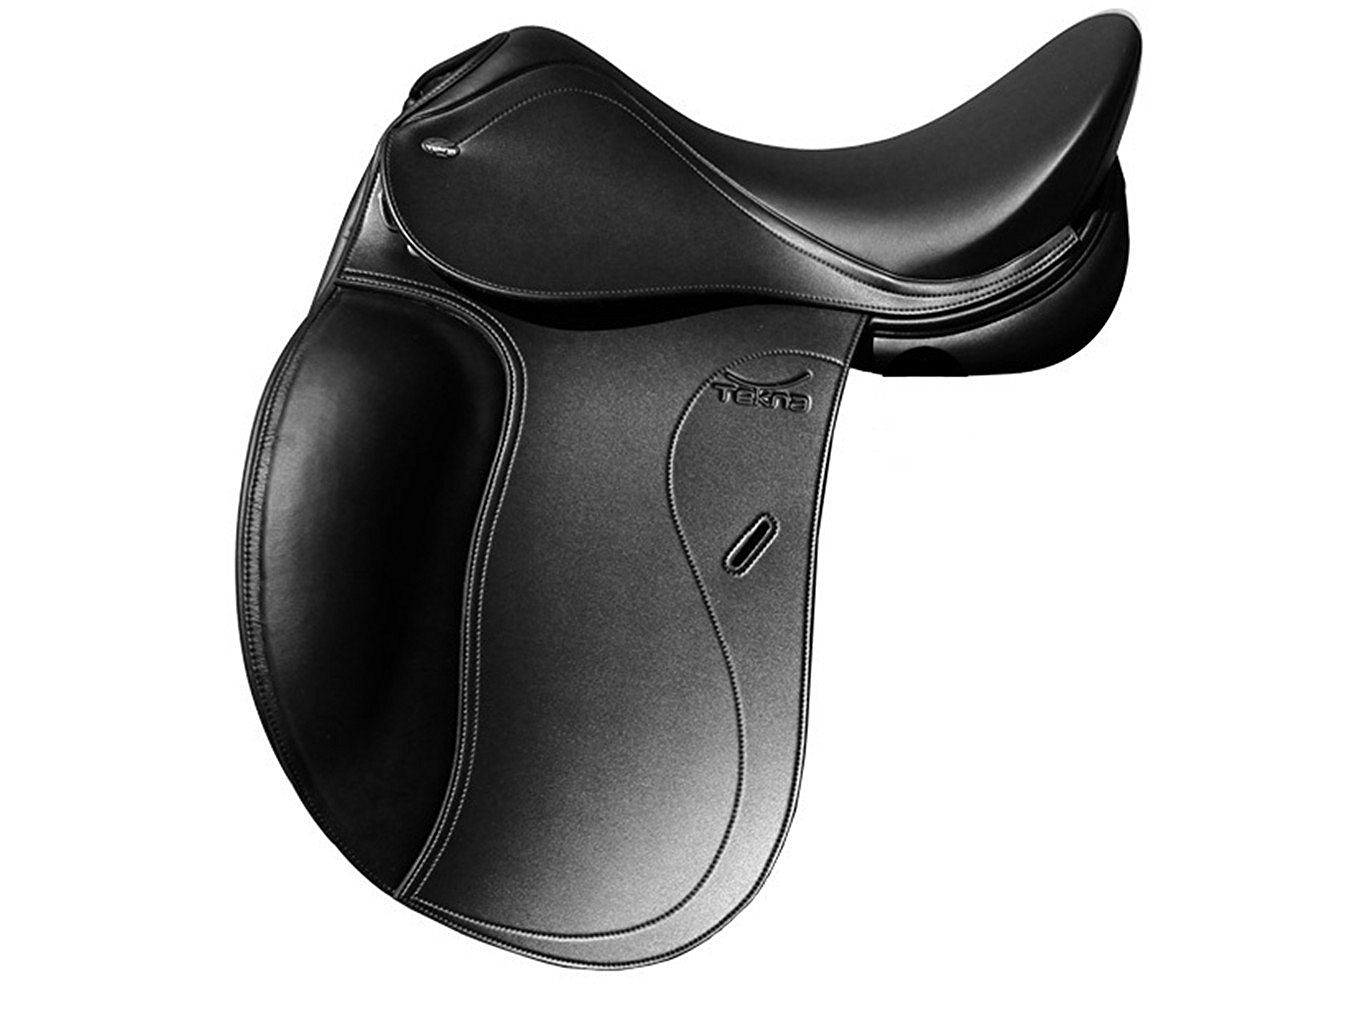 WinZon Calfskin Horse Dressage Saddle